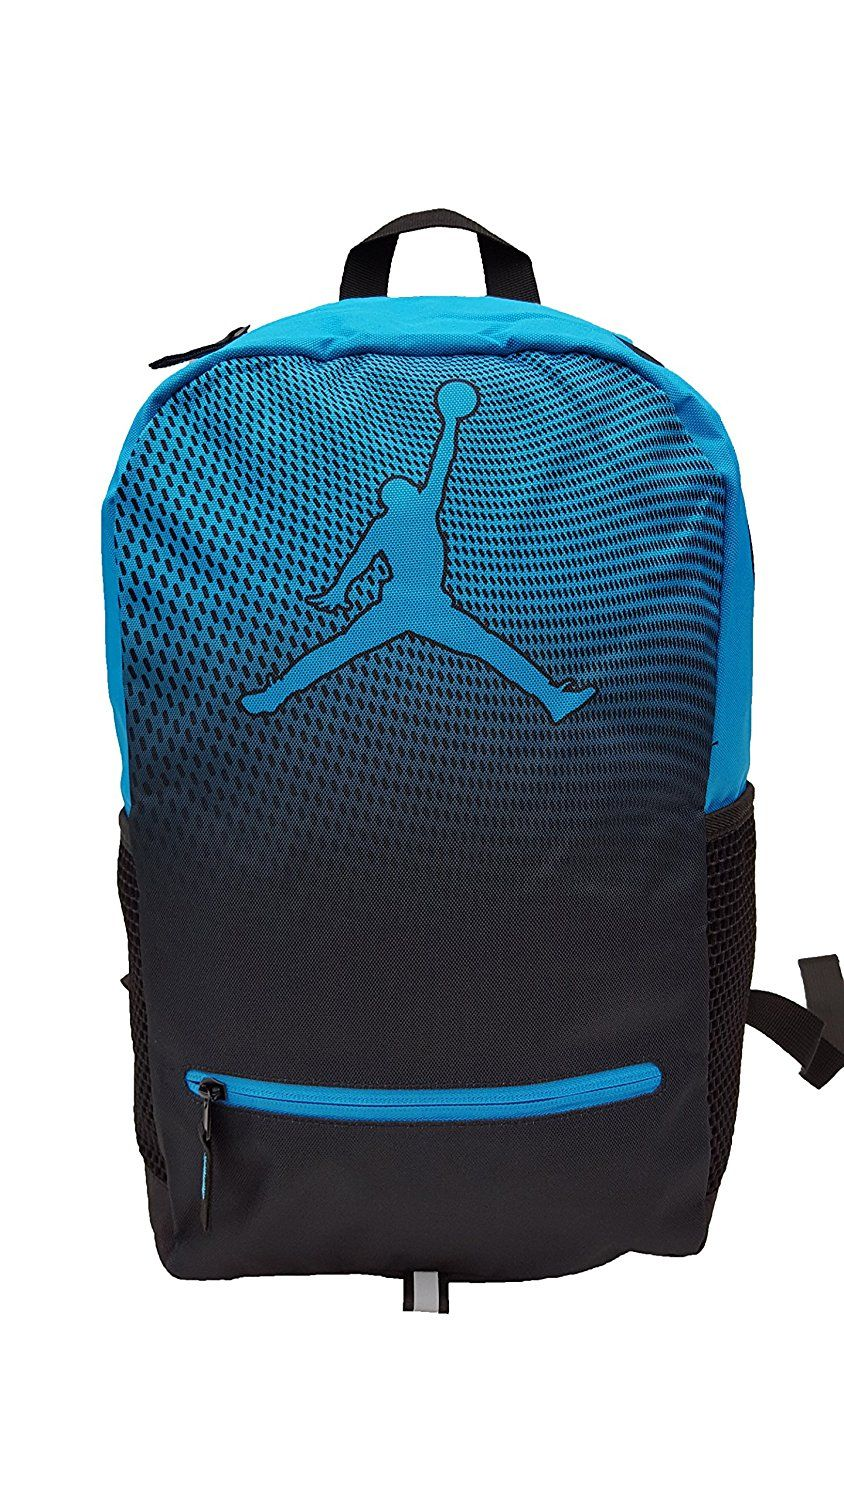 22bbc50348 Amazon.com  Nike Jordan Jumpman Youth Backpack (One Size